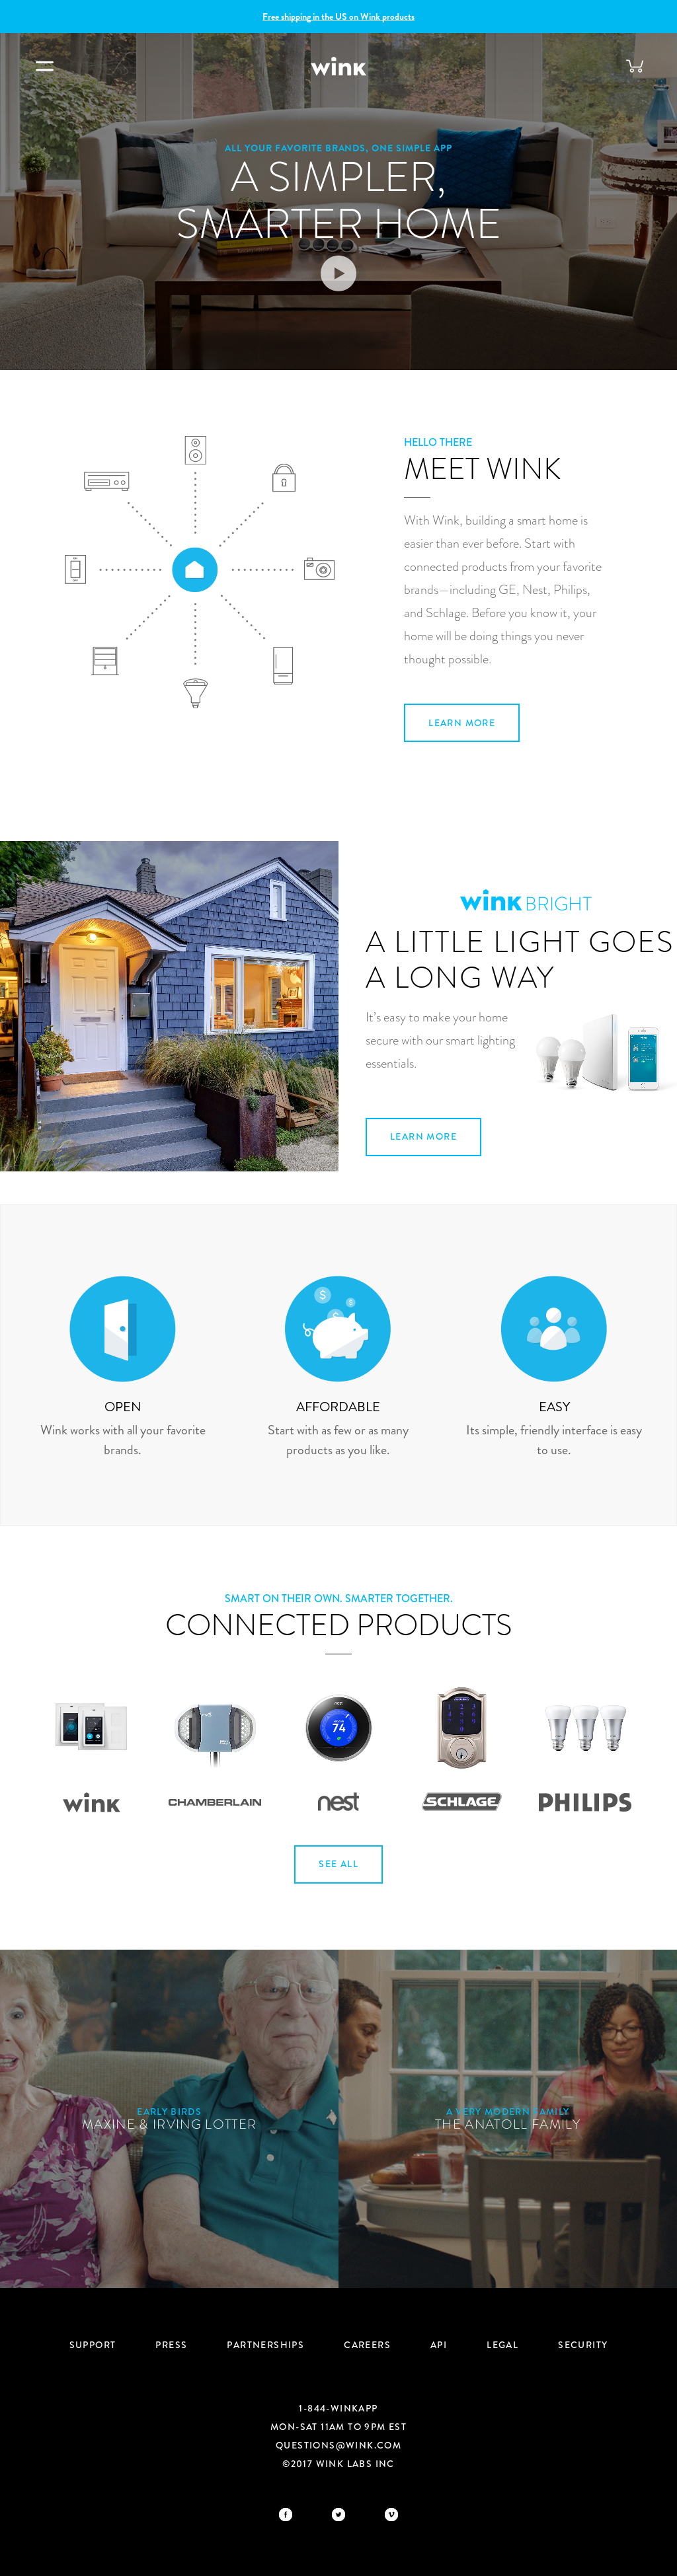 Owler Reports - Wink: Wink Lookout review: Wink's security